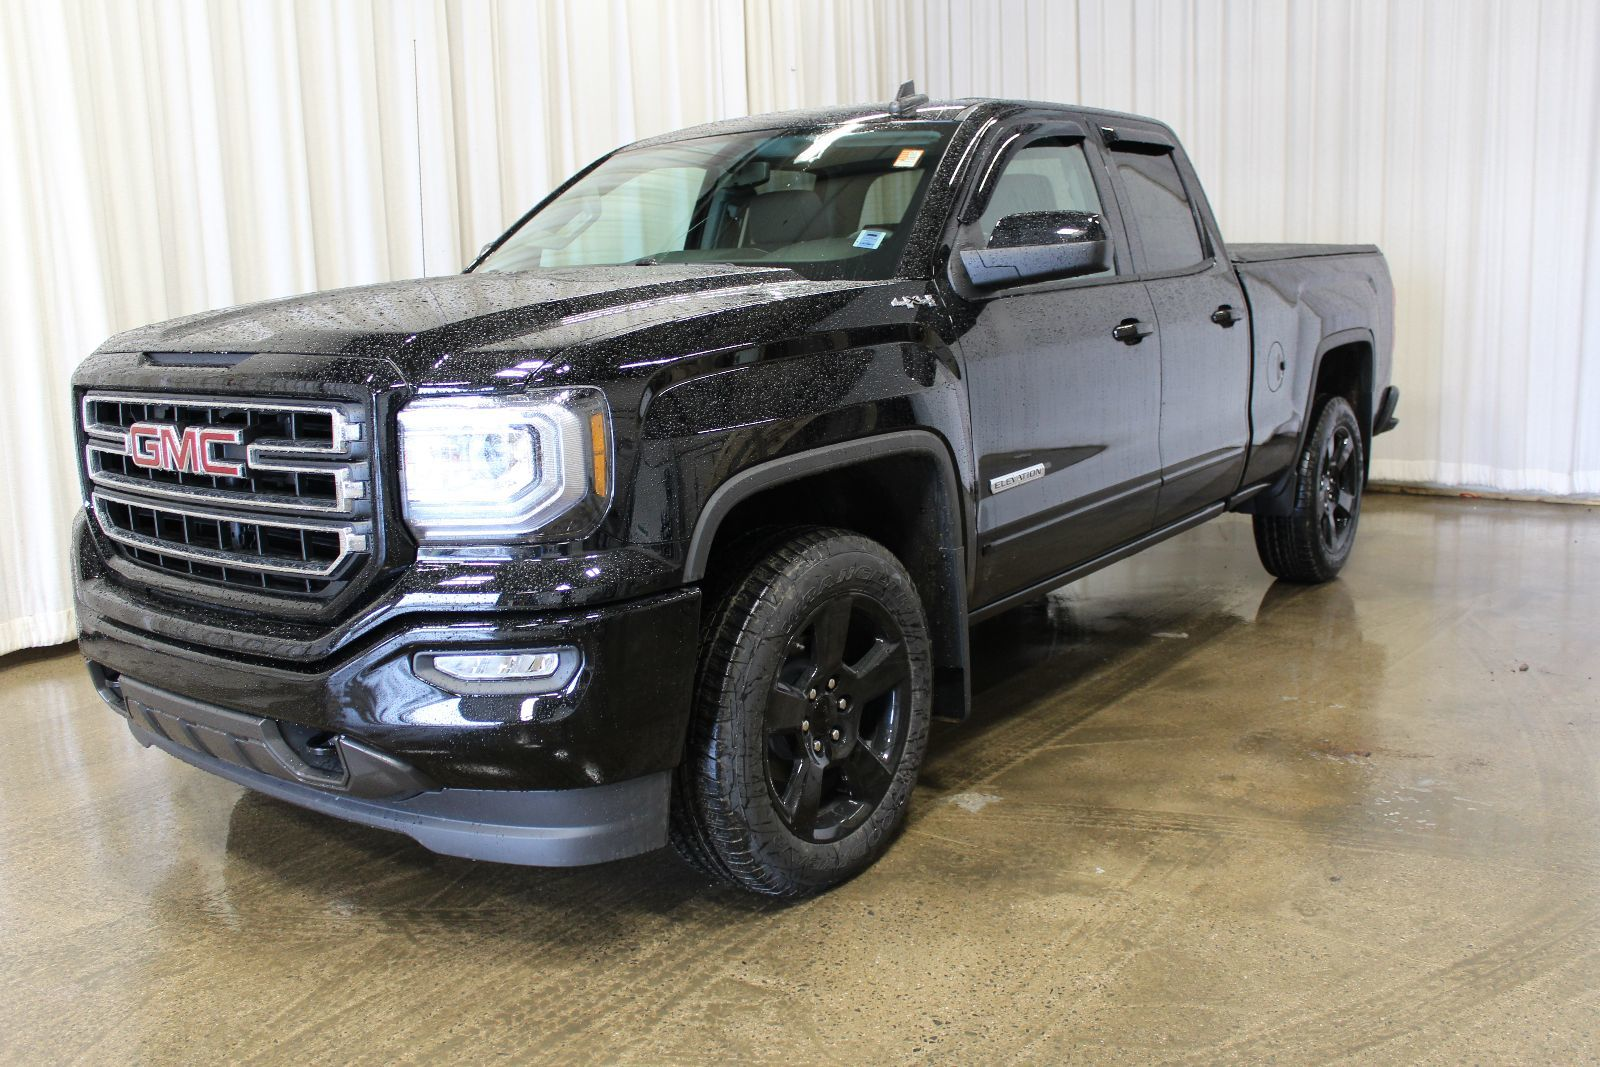 gmc sierra 1500 4x4 cab extended elevation edition cyl 3l chevrolet bruce buick